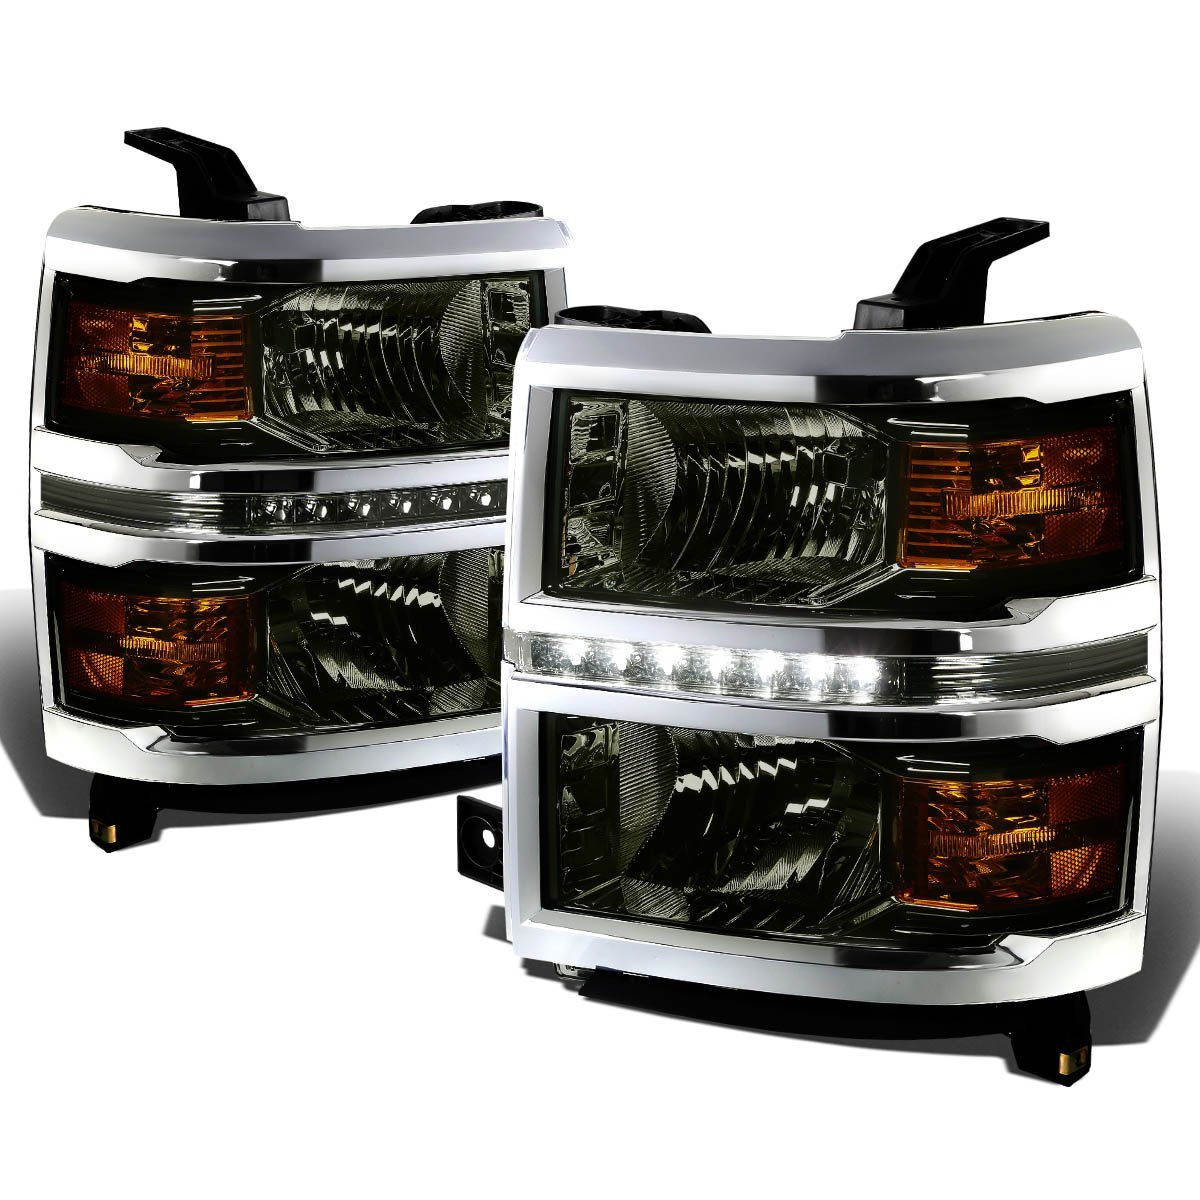 2014-15 Chevy Silverado 1500 LED Strip Replacement Headlights - Smoked